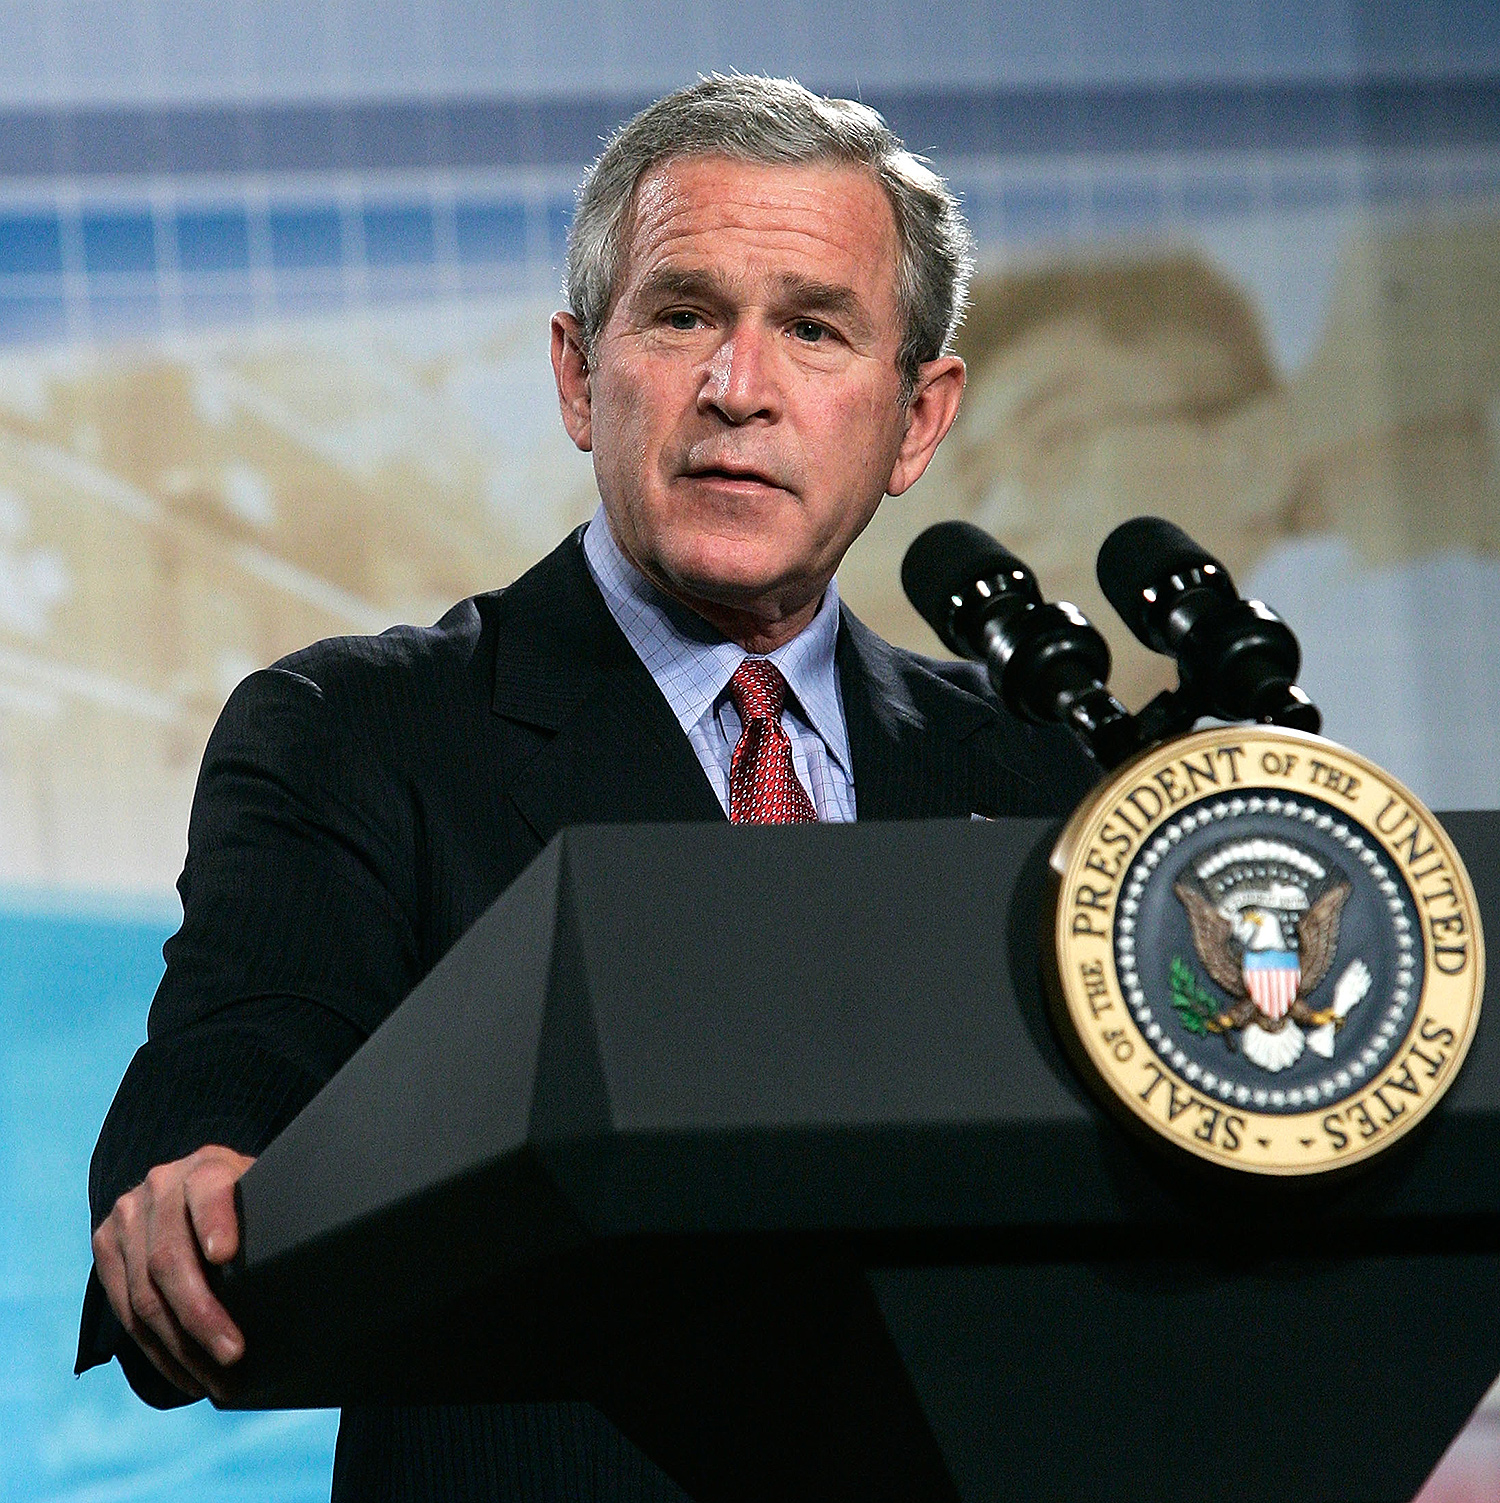 George W. Bush's 2005 Warning Resurfaces: Waiting for a Pandemic to Start Preparing 'Will Be Too Late'